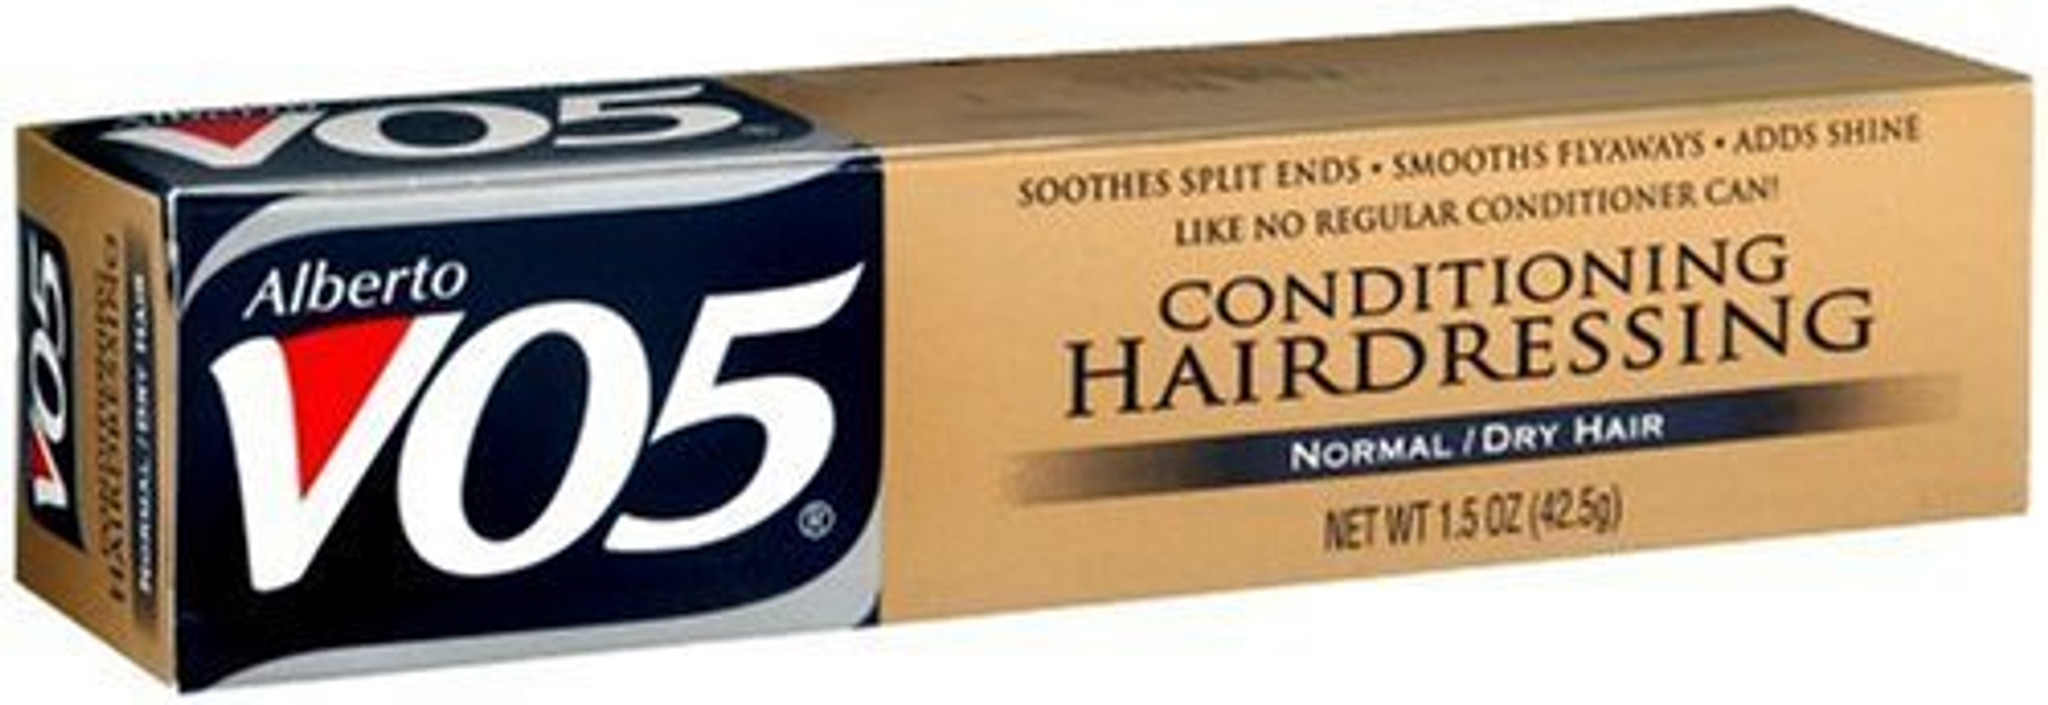 Alberto VO5 Hairdressing for Normal & Dry Hair 1.5 Oz